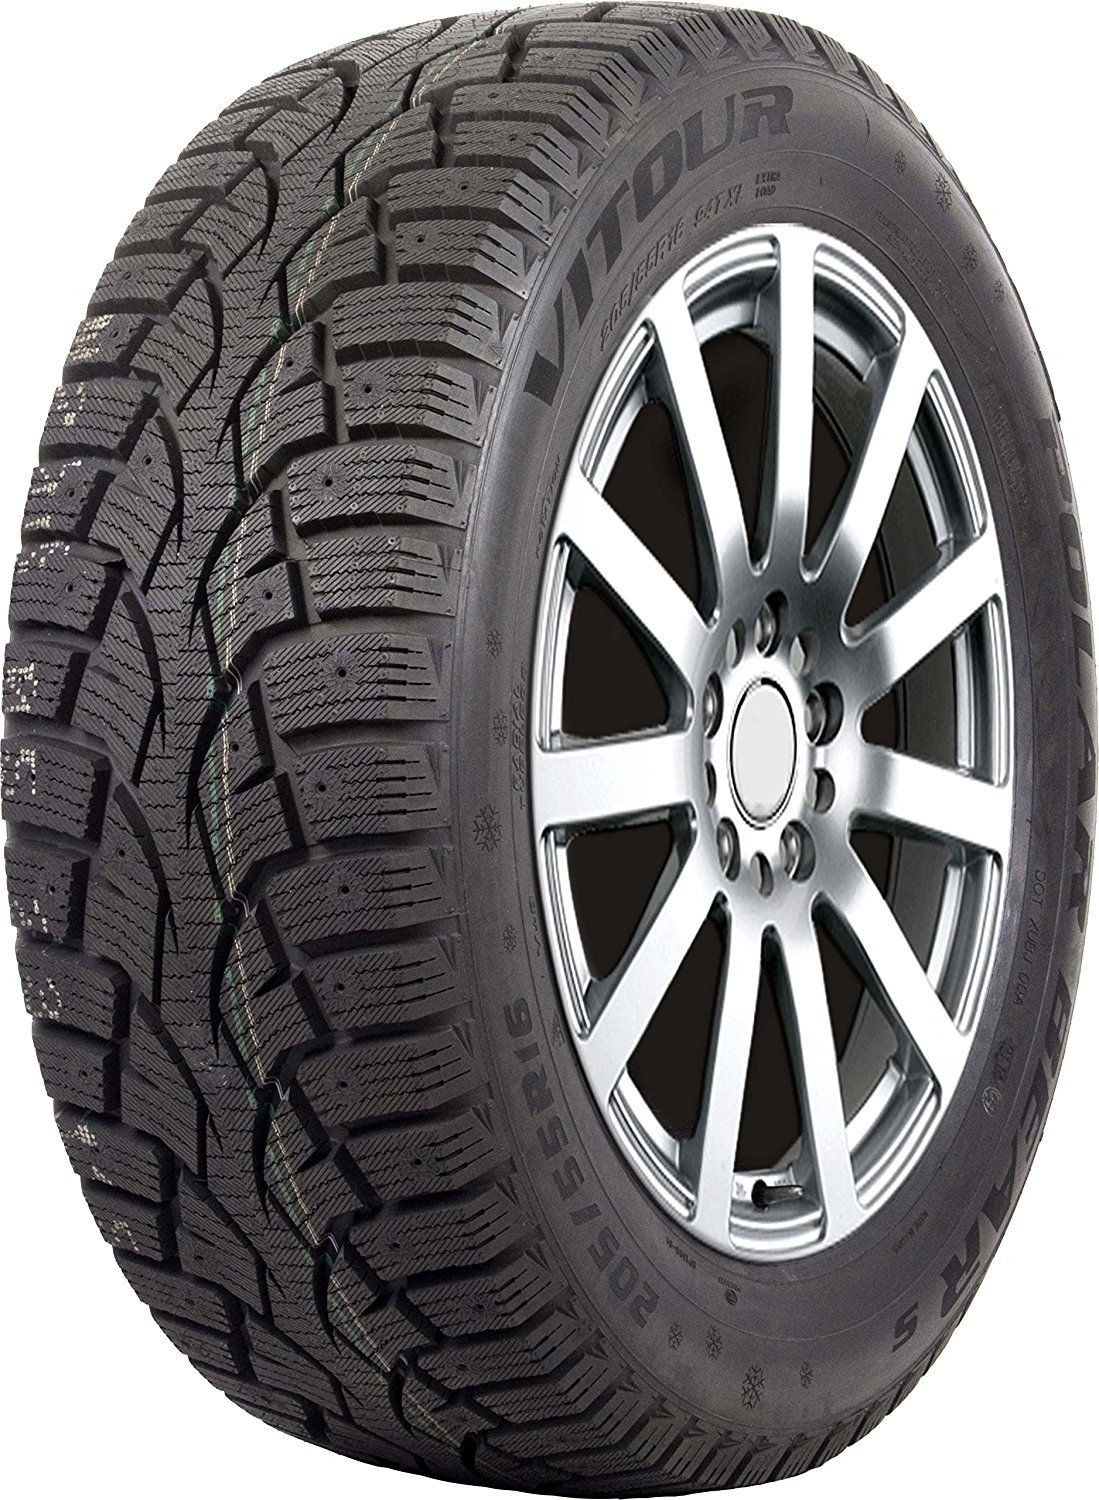 Vitour POLAR BEAR S (STUDDABLE) Studable-Winter Radial Tire - 245/45R17 95T